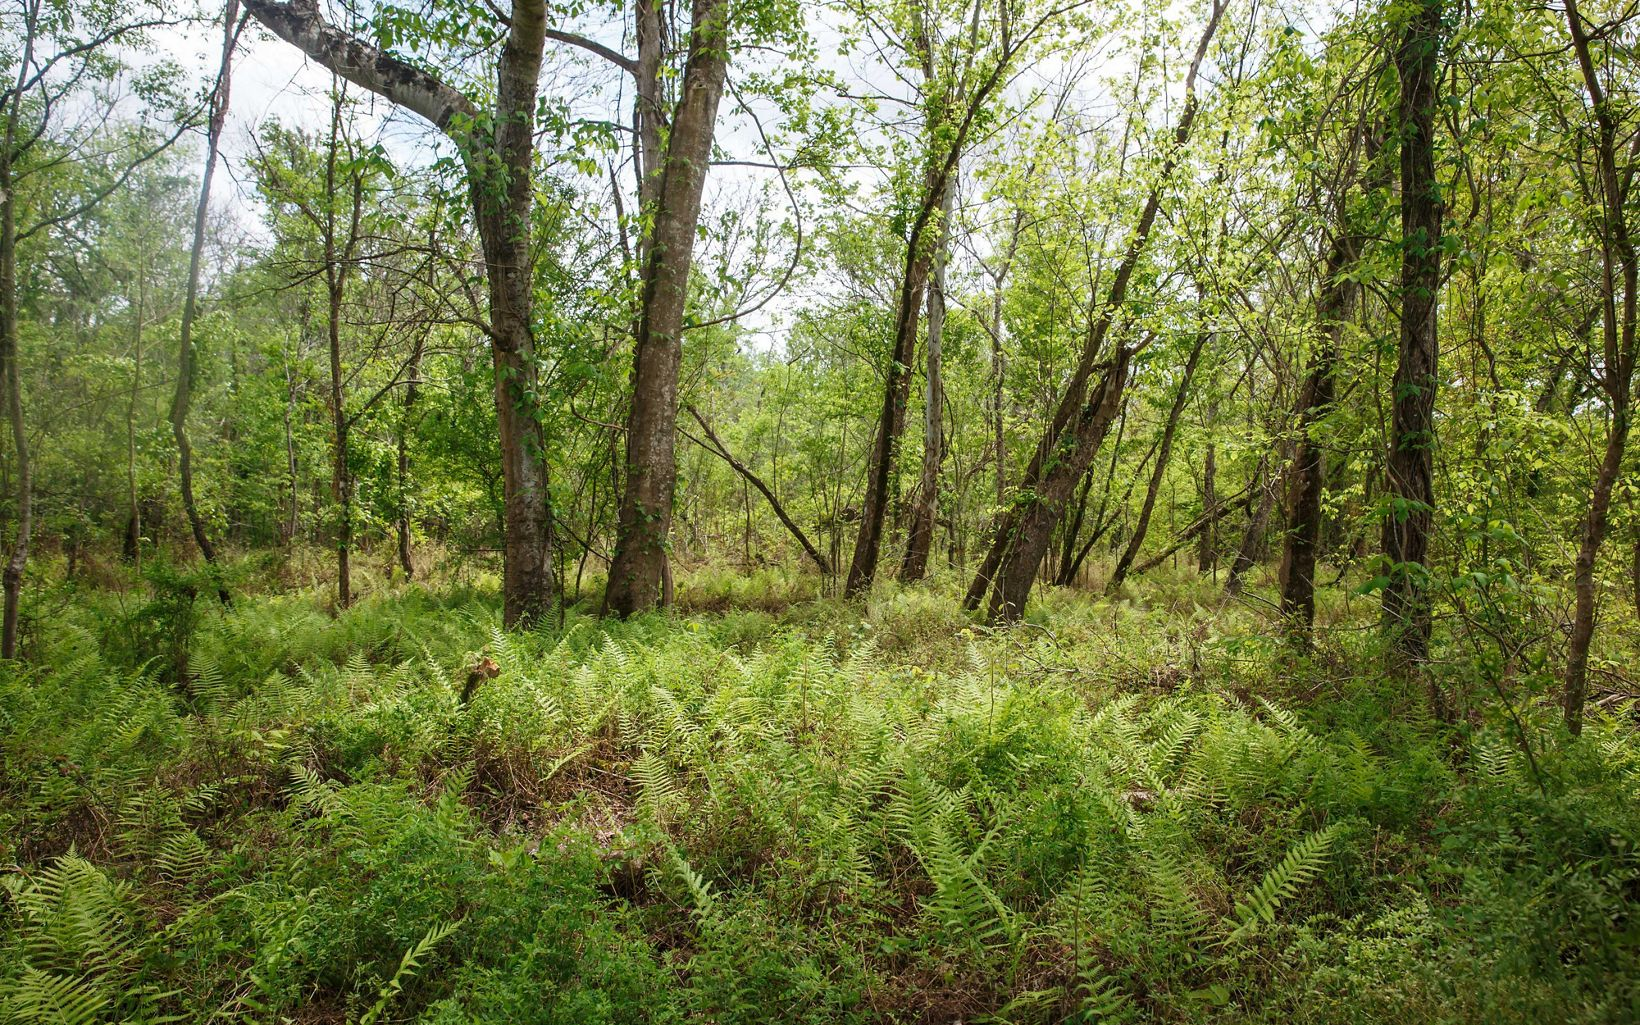 Fern forest in the Atchafalaya